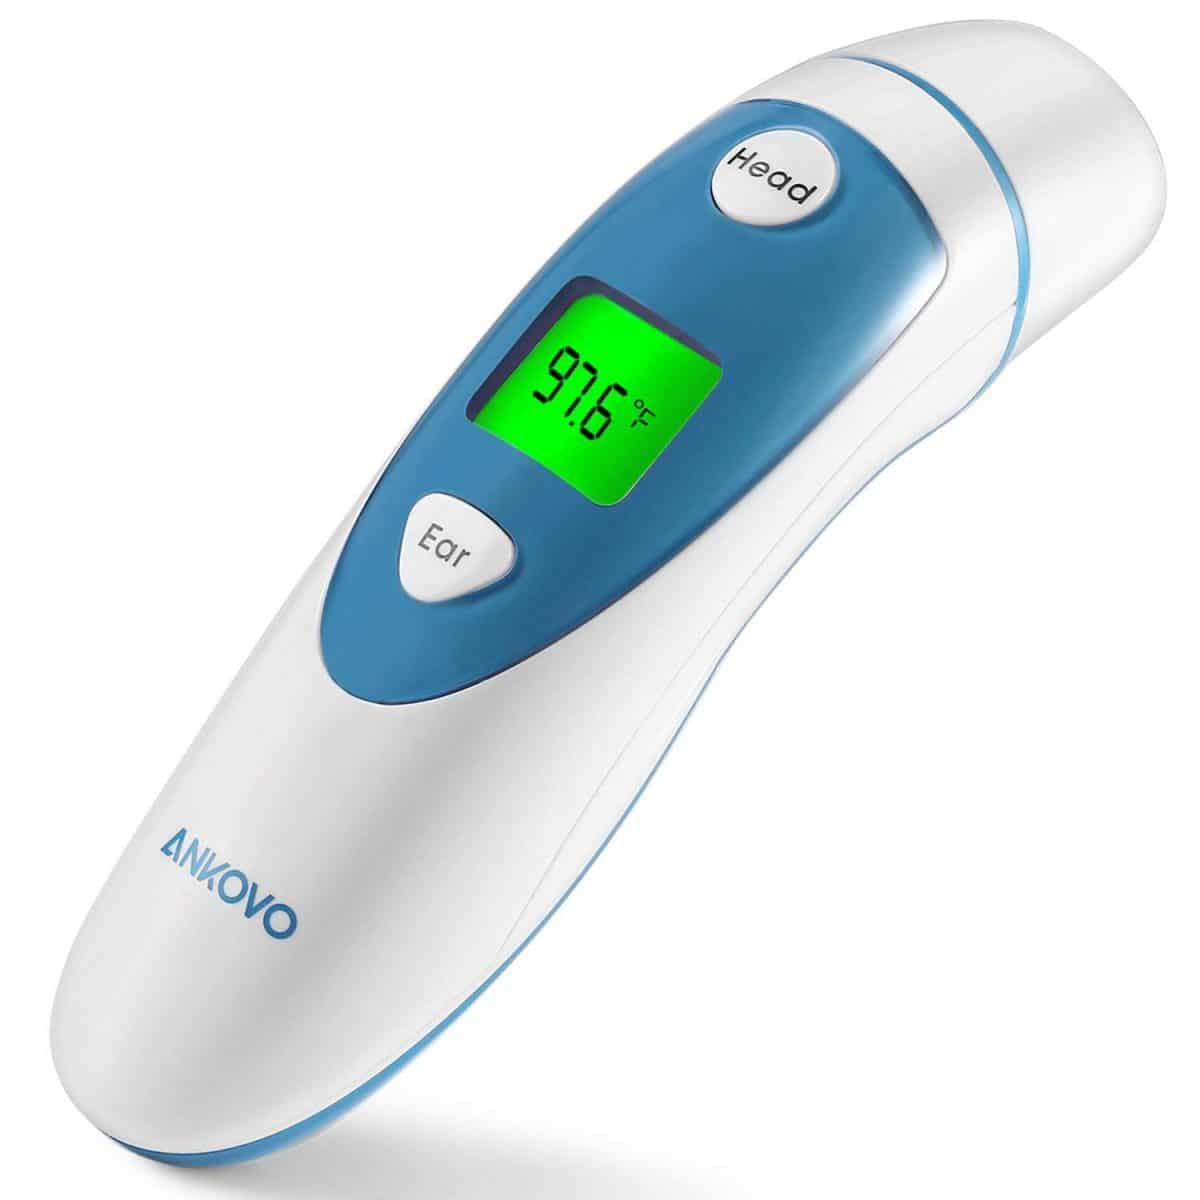 Smart ThermometerPersonal Protective Equipment Beep Alert Previous Memory Take Your Own Temperature at Home Rapid Read Digital Thermometers